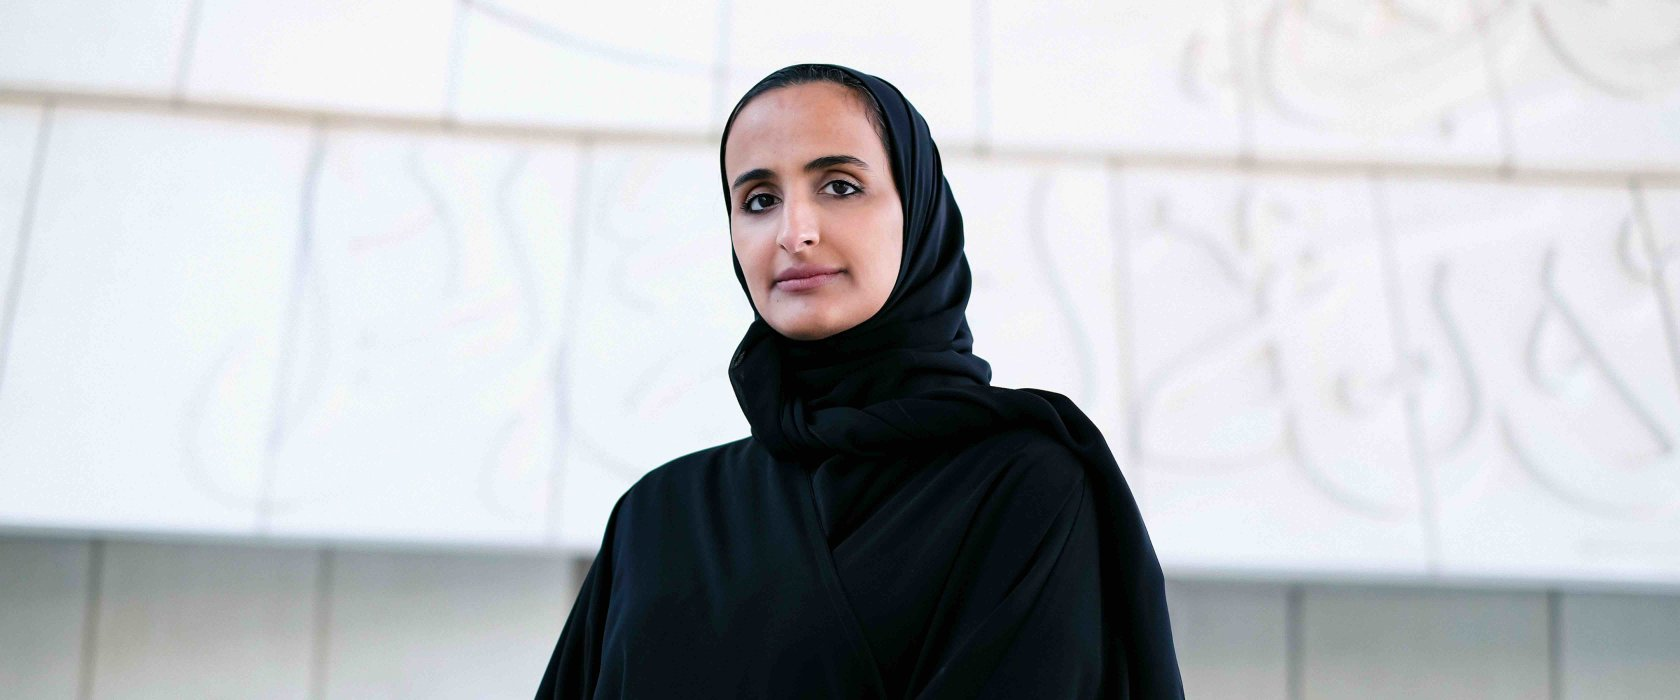 Her Excellency Sheikha Hind: 'This is the time to reflect, take risks - and disrupt education'